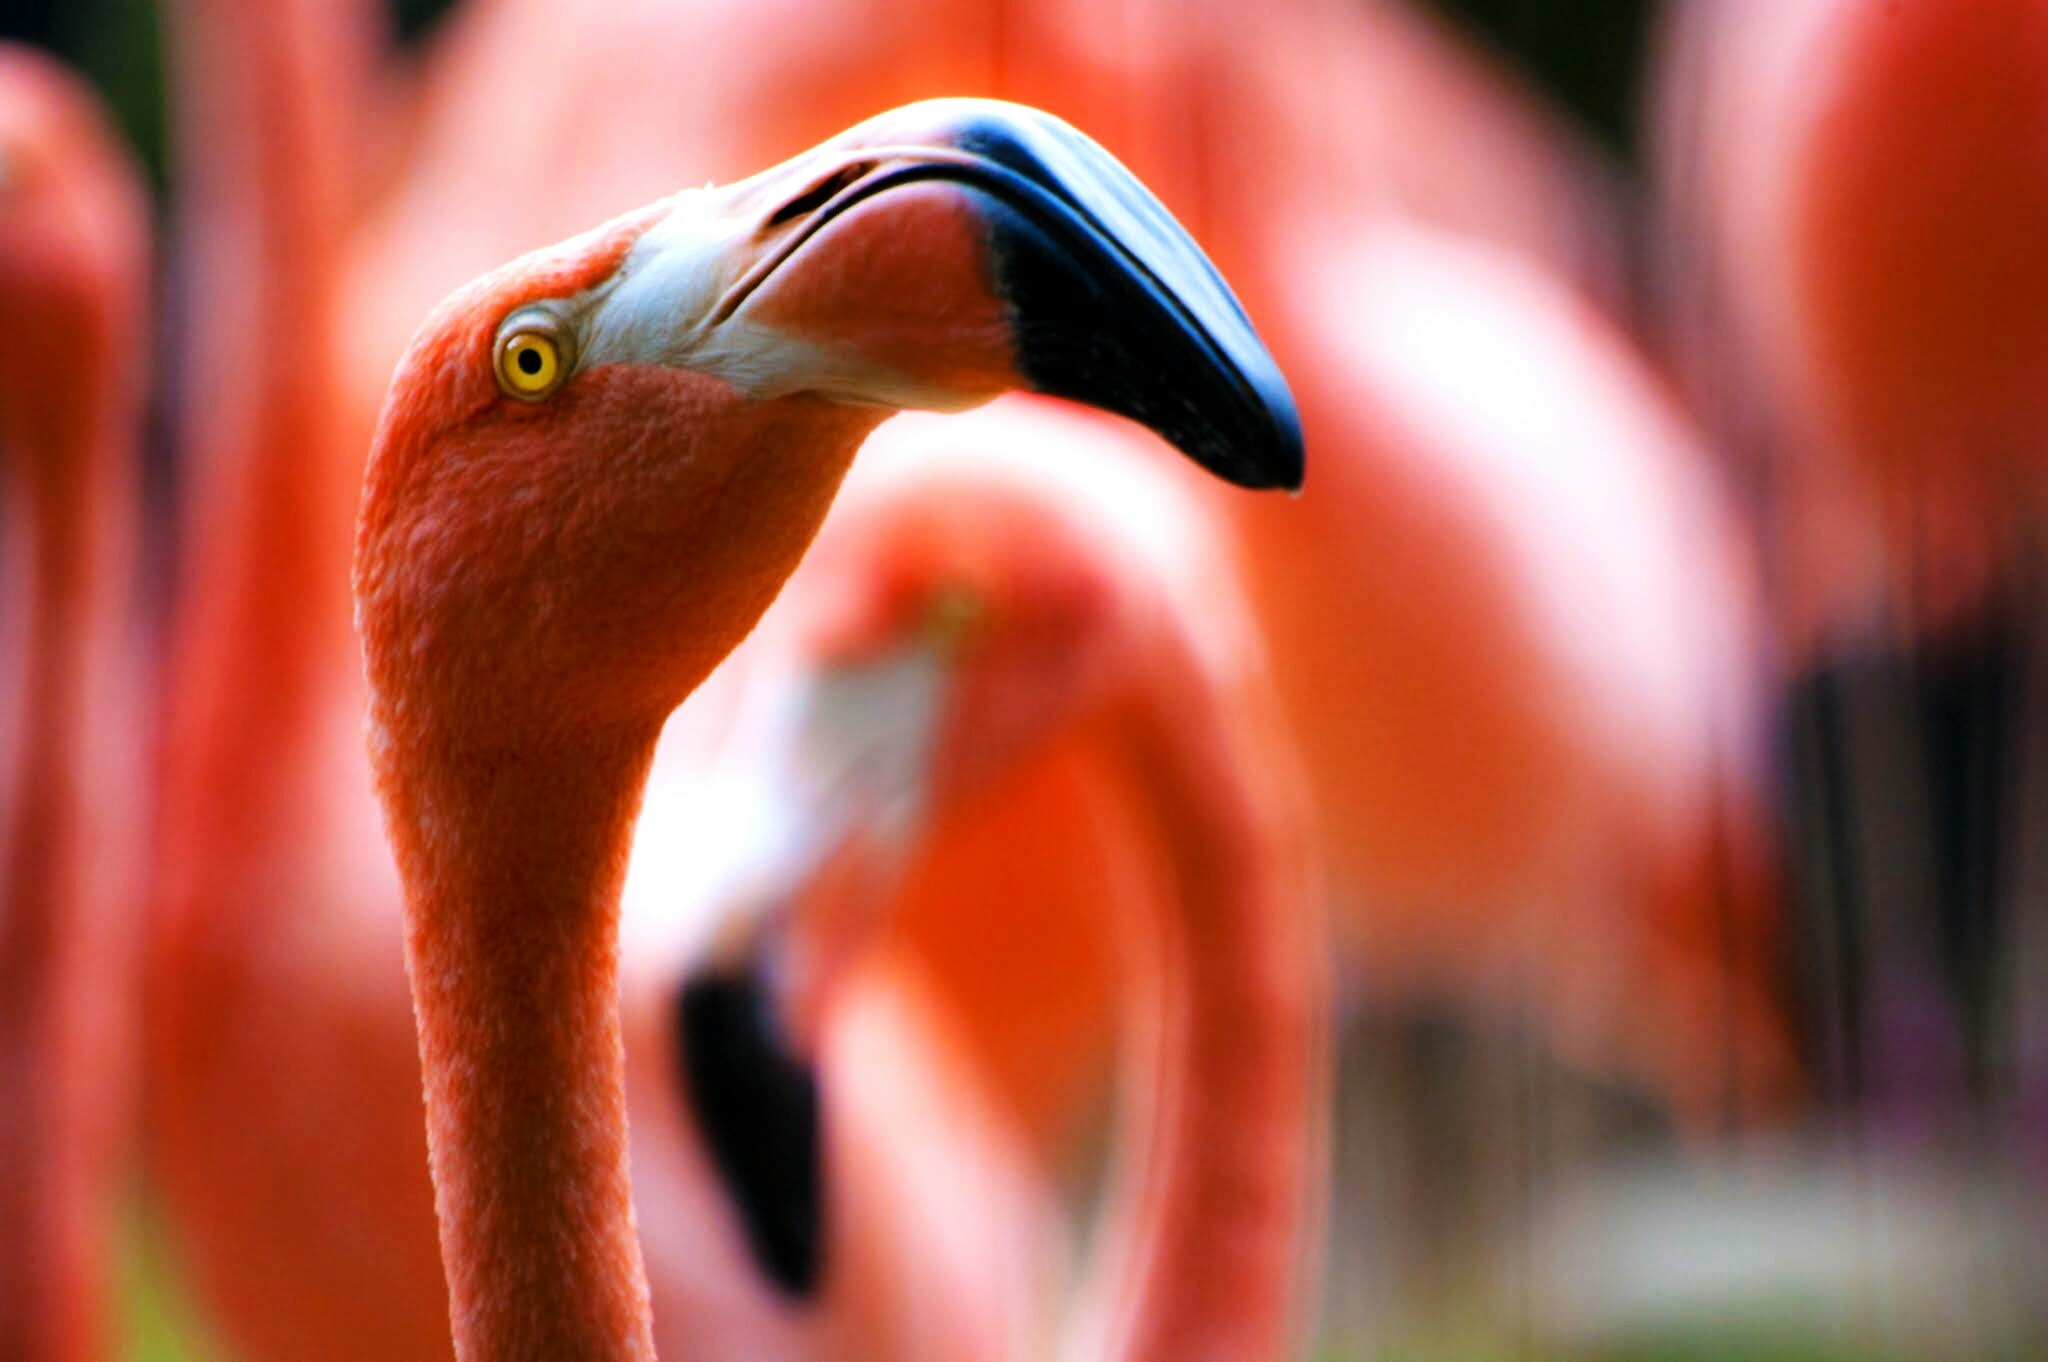 tilt shift lens photography of flamingo bird